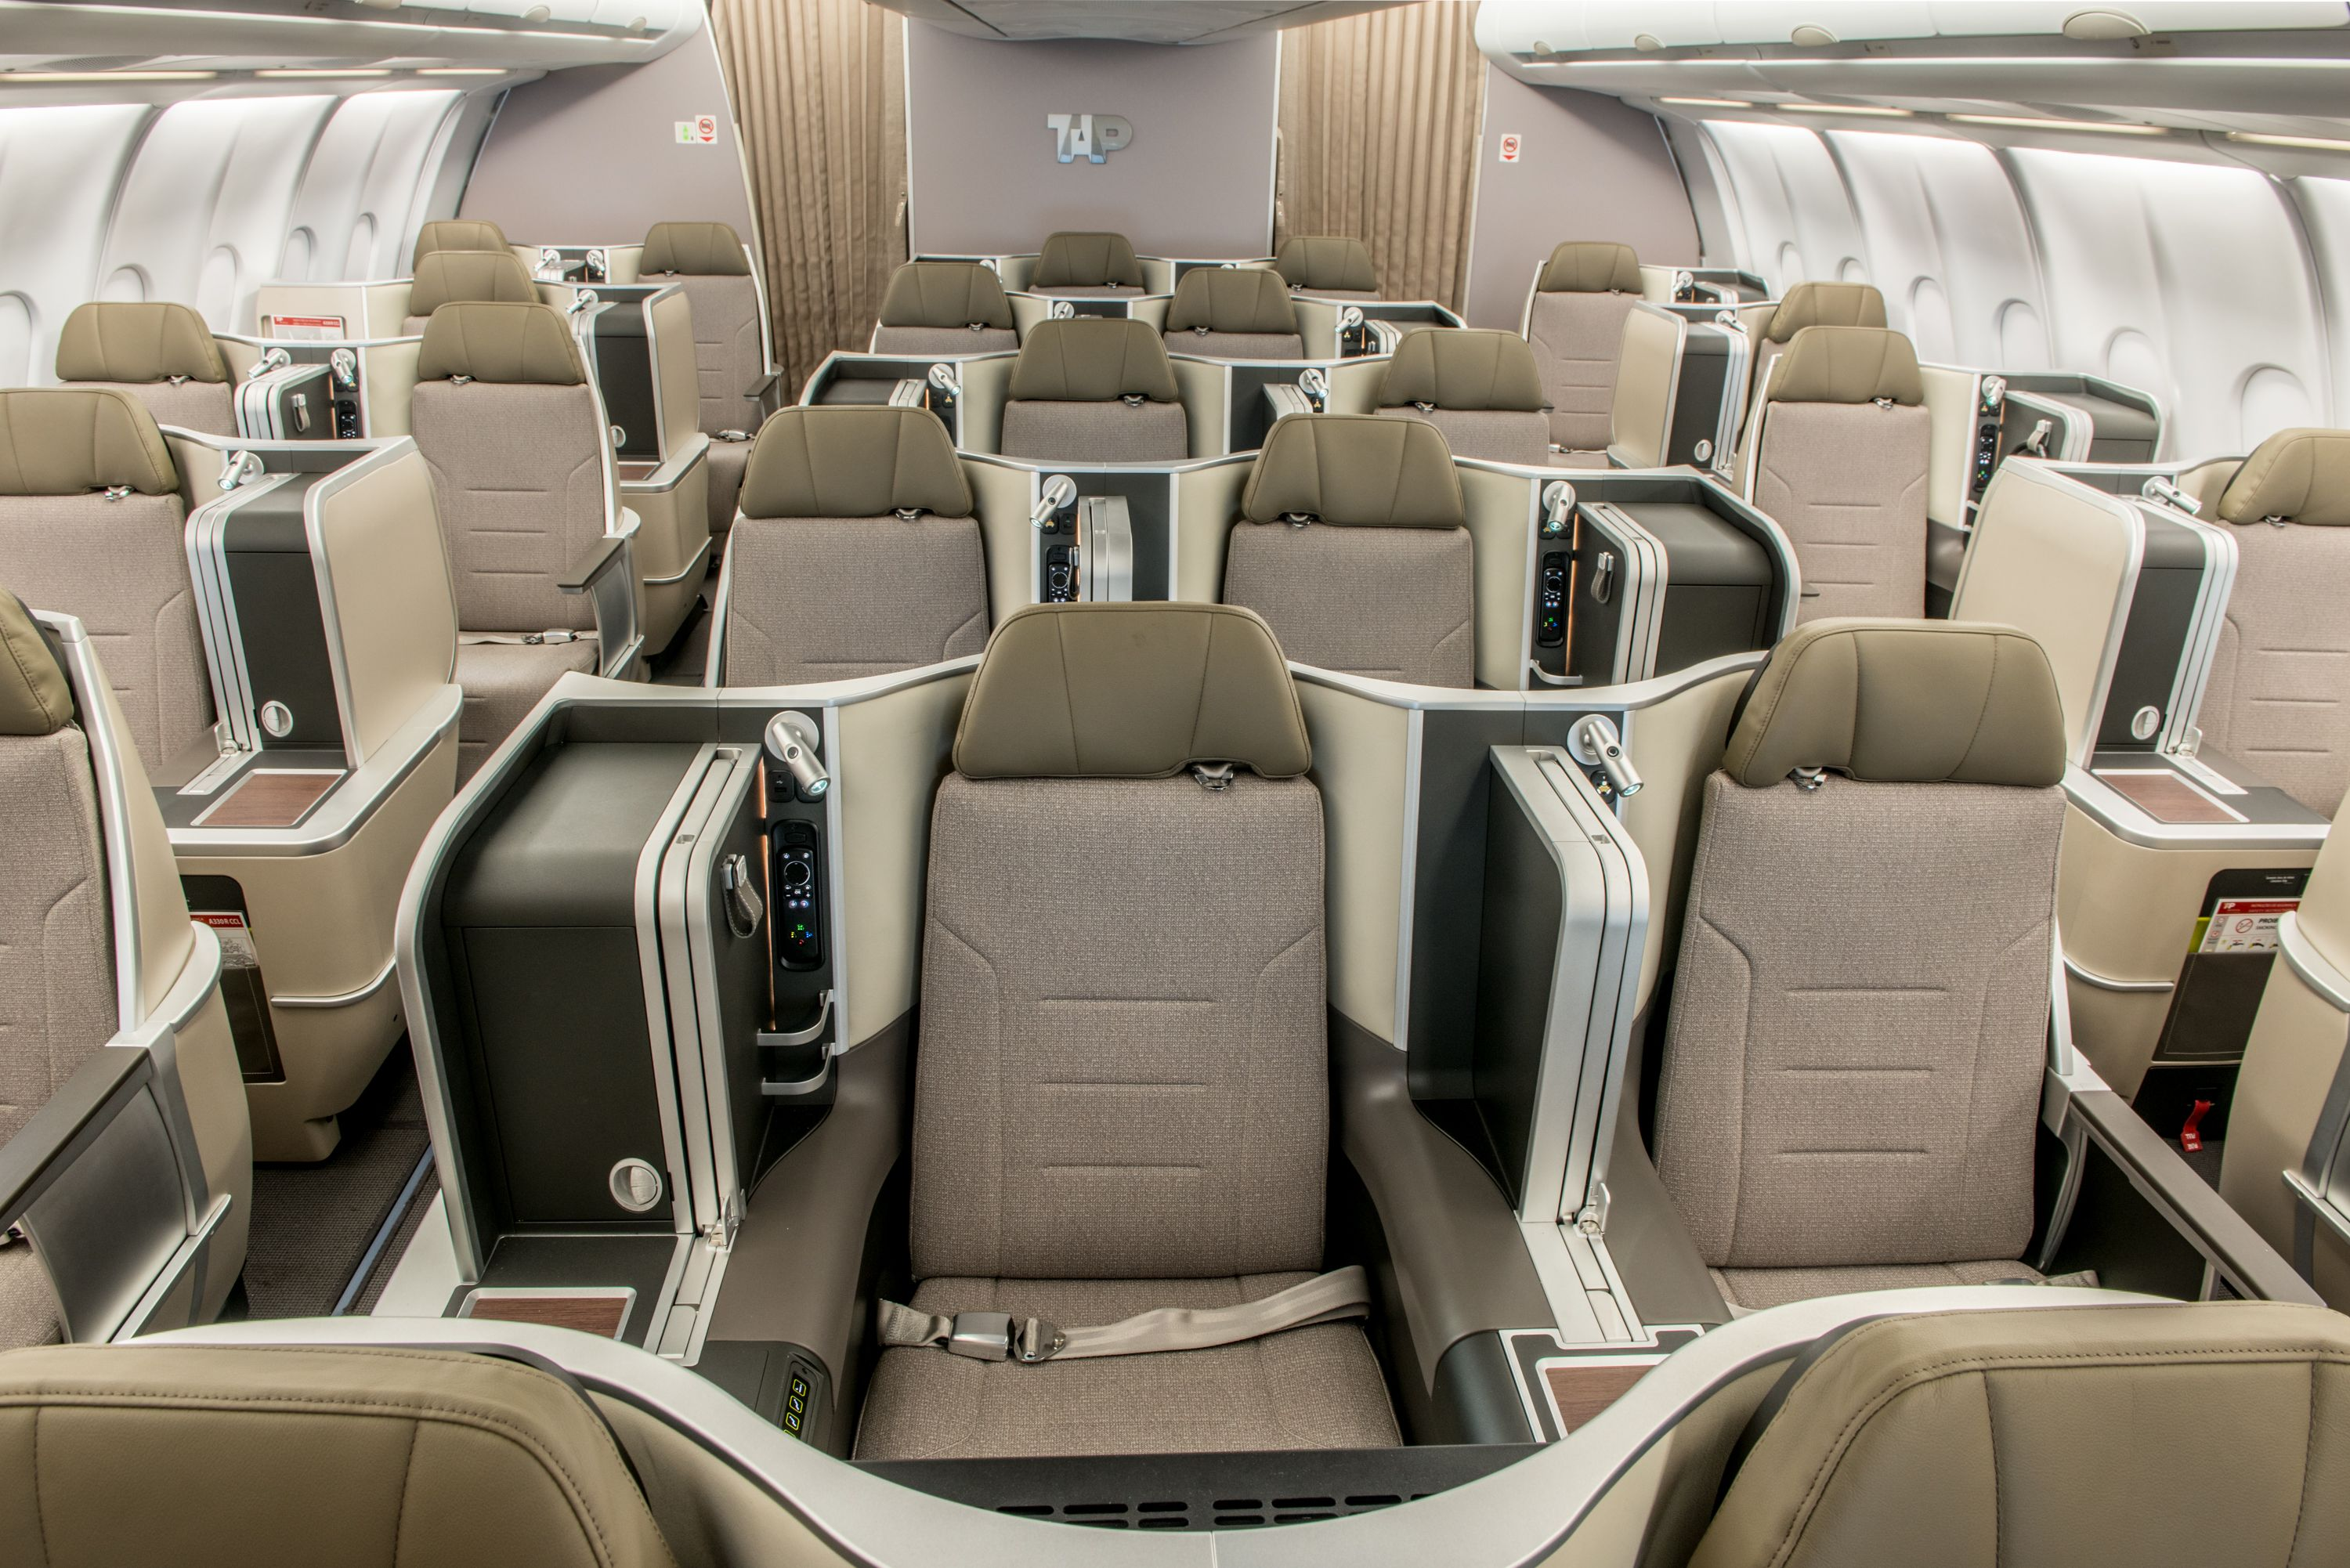 Tap Tap Portugal Tap Air Portugal Airline Economy Luxury Seating